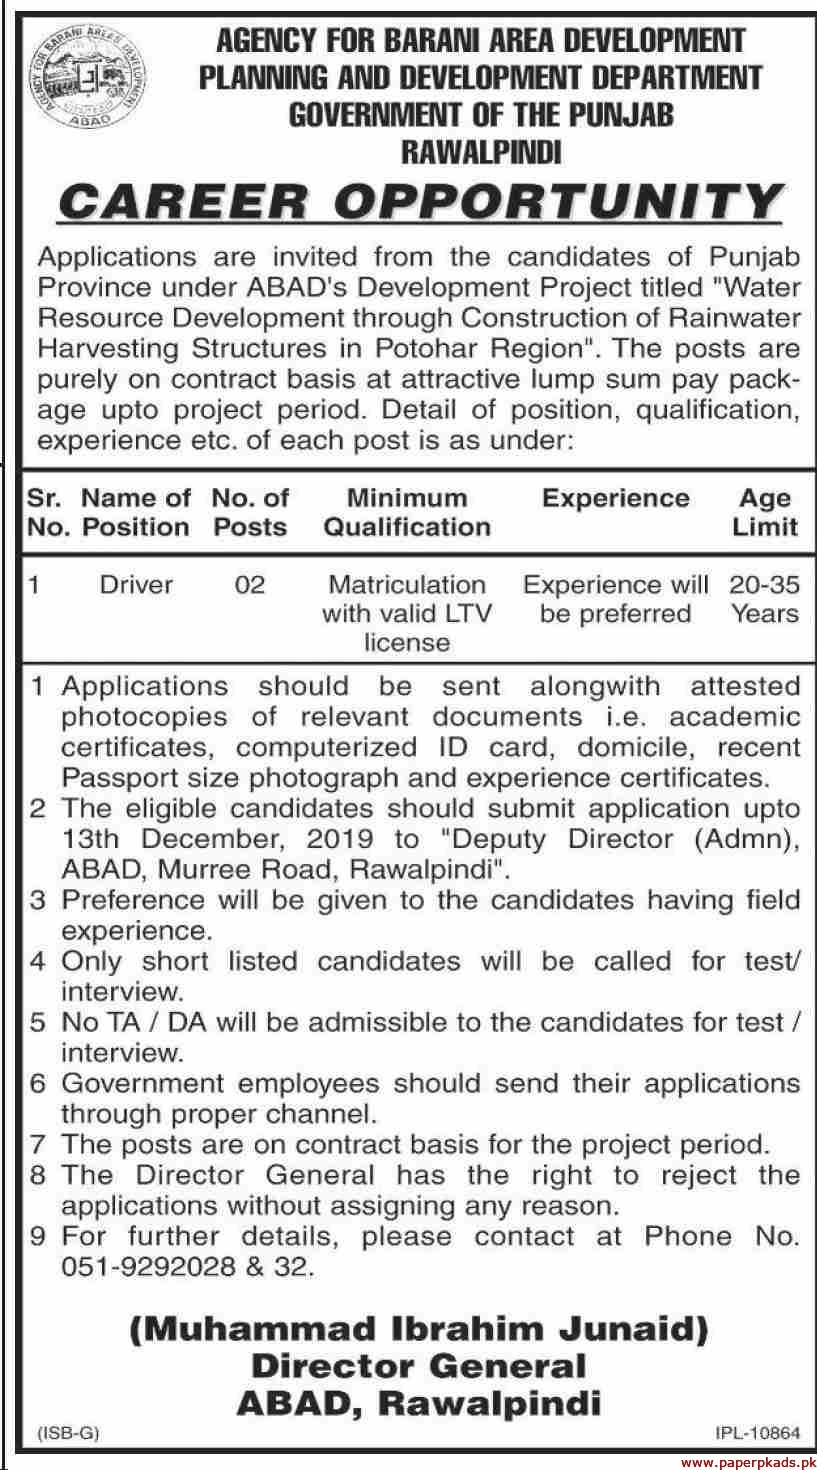 Planning and Development Department Government of the Punjab Jobs 2019 Latest